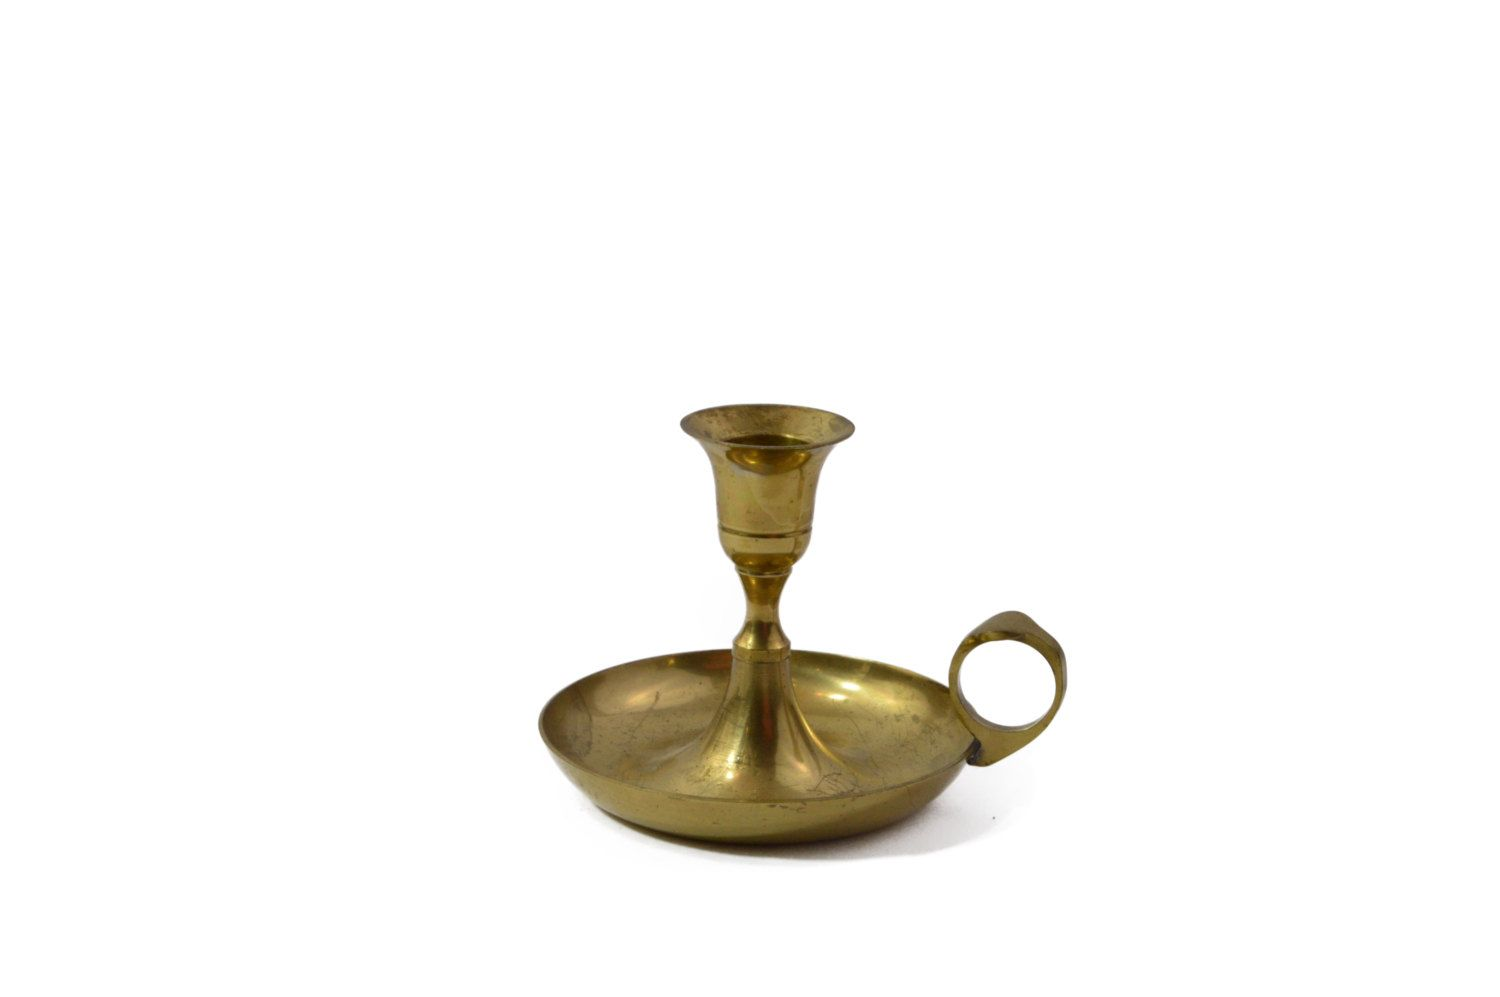 Candle Holder Brass Chamber Candle Holder Candlestick Brass Old Bar Country Decor Country Living Vintage Style